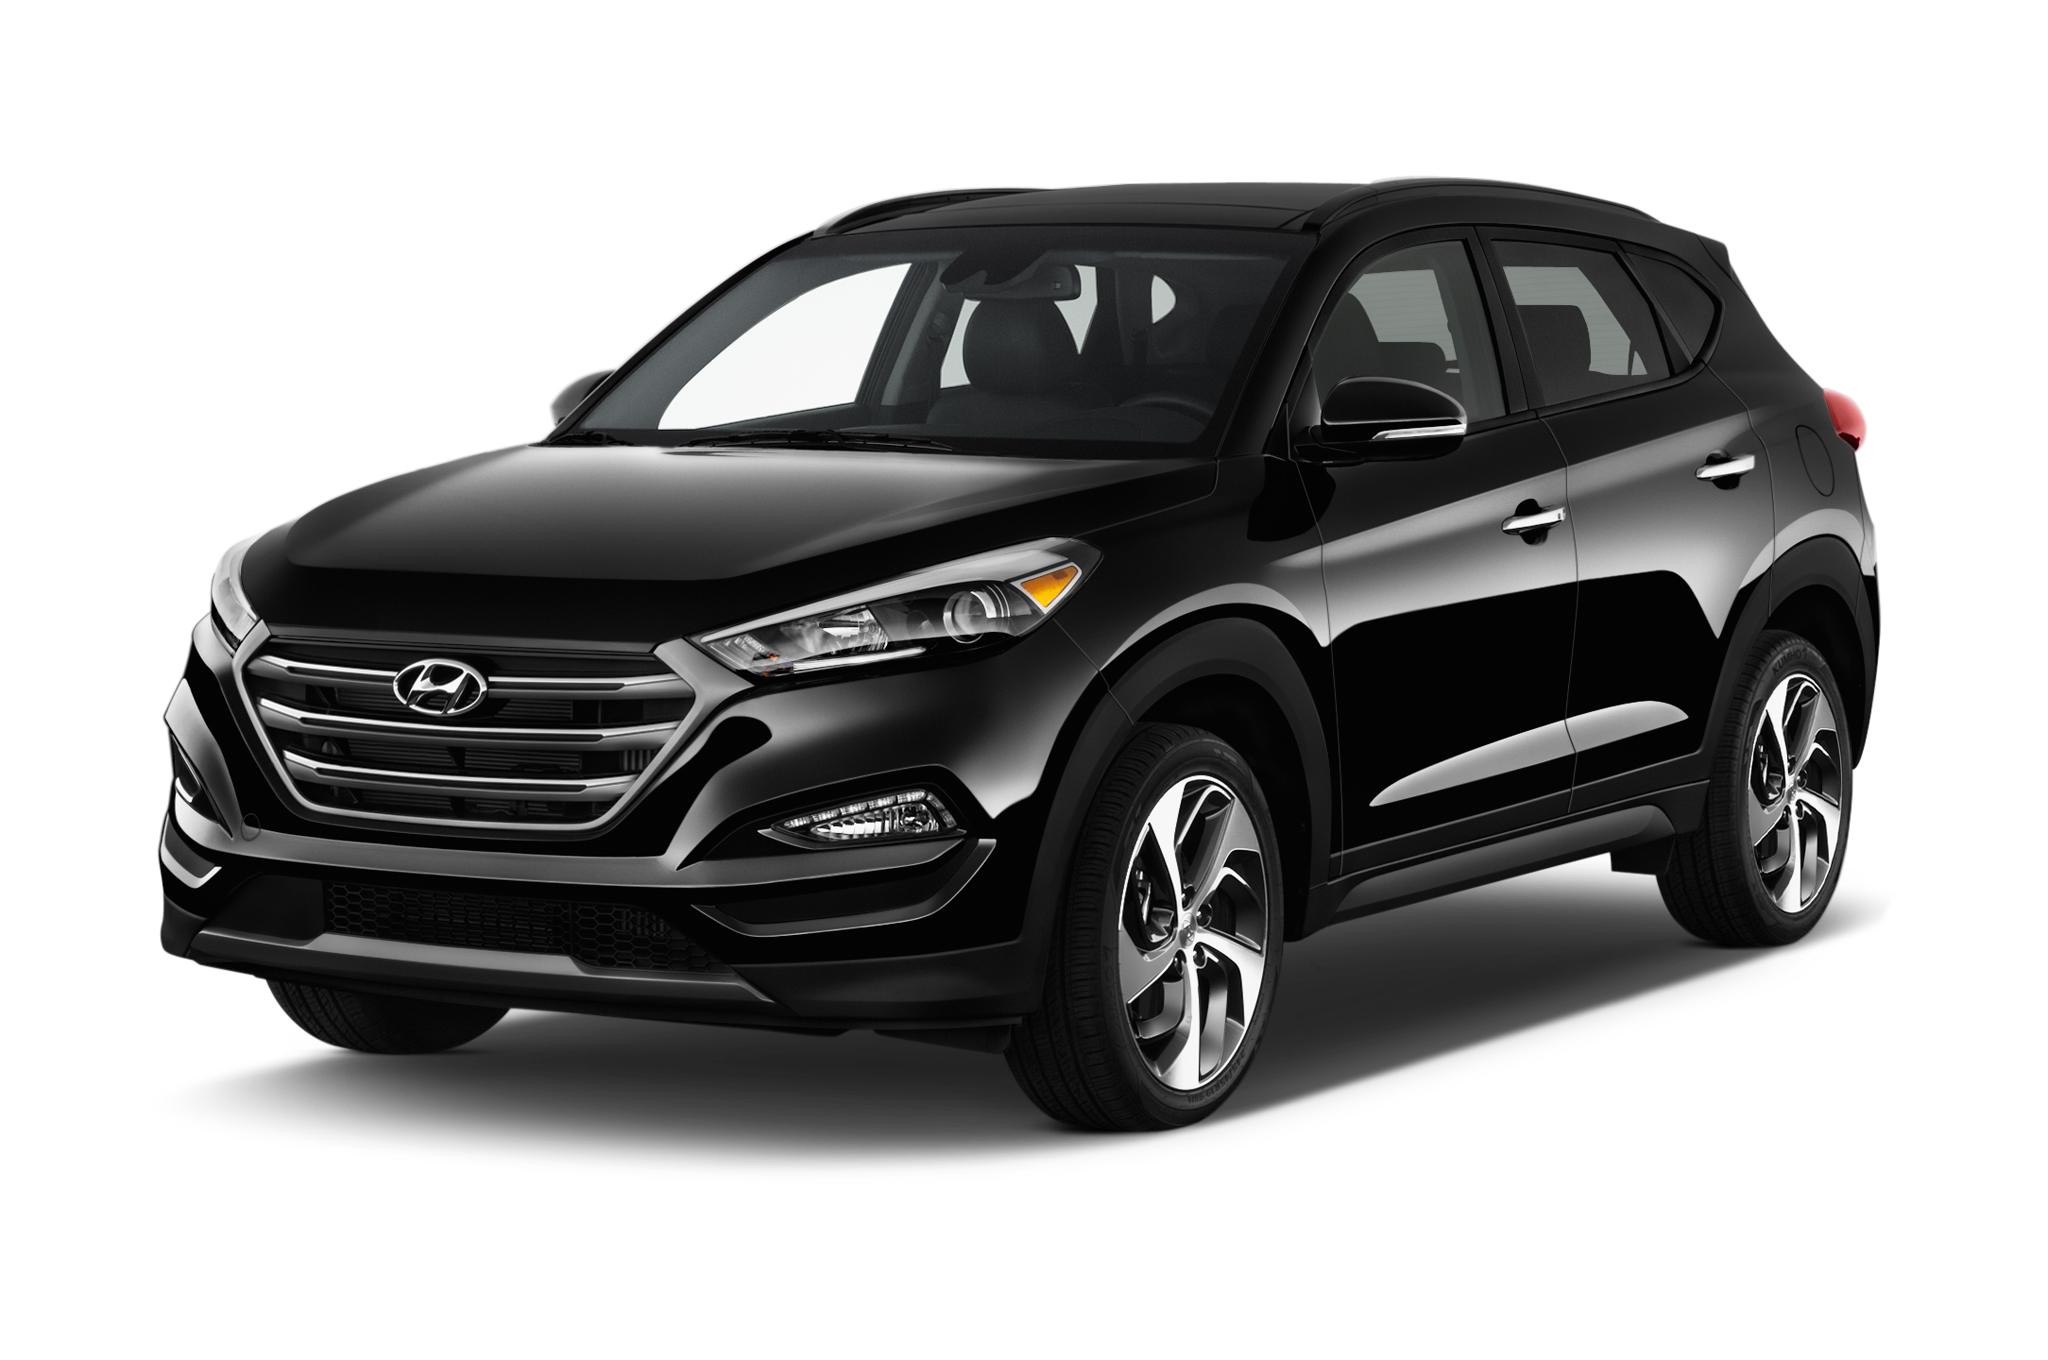 2016 hyundai tucson sport awd interior features msn autos. Black Bedroom Furniture Sets. Home Design Ideas